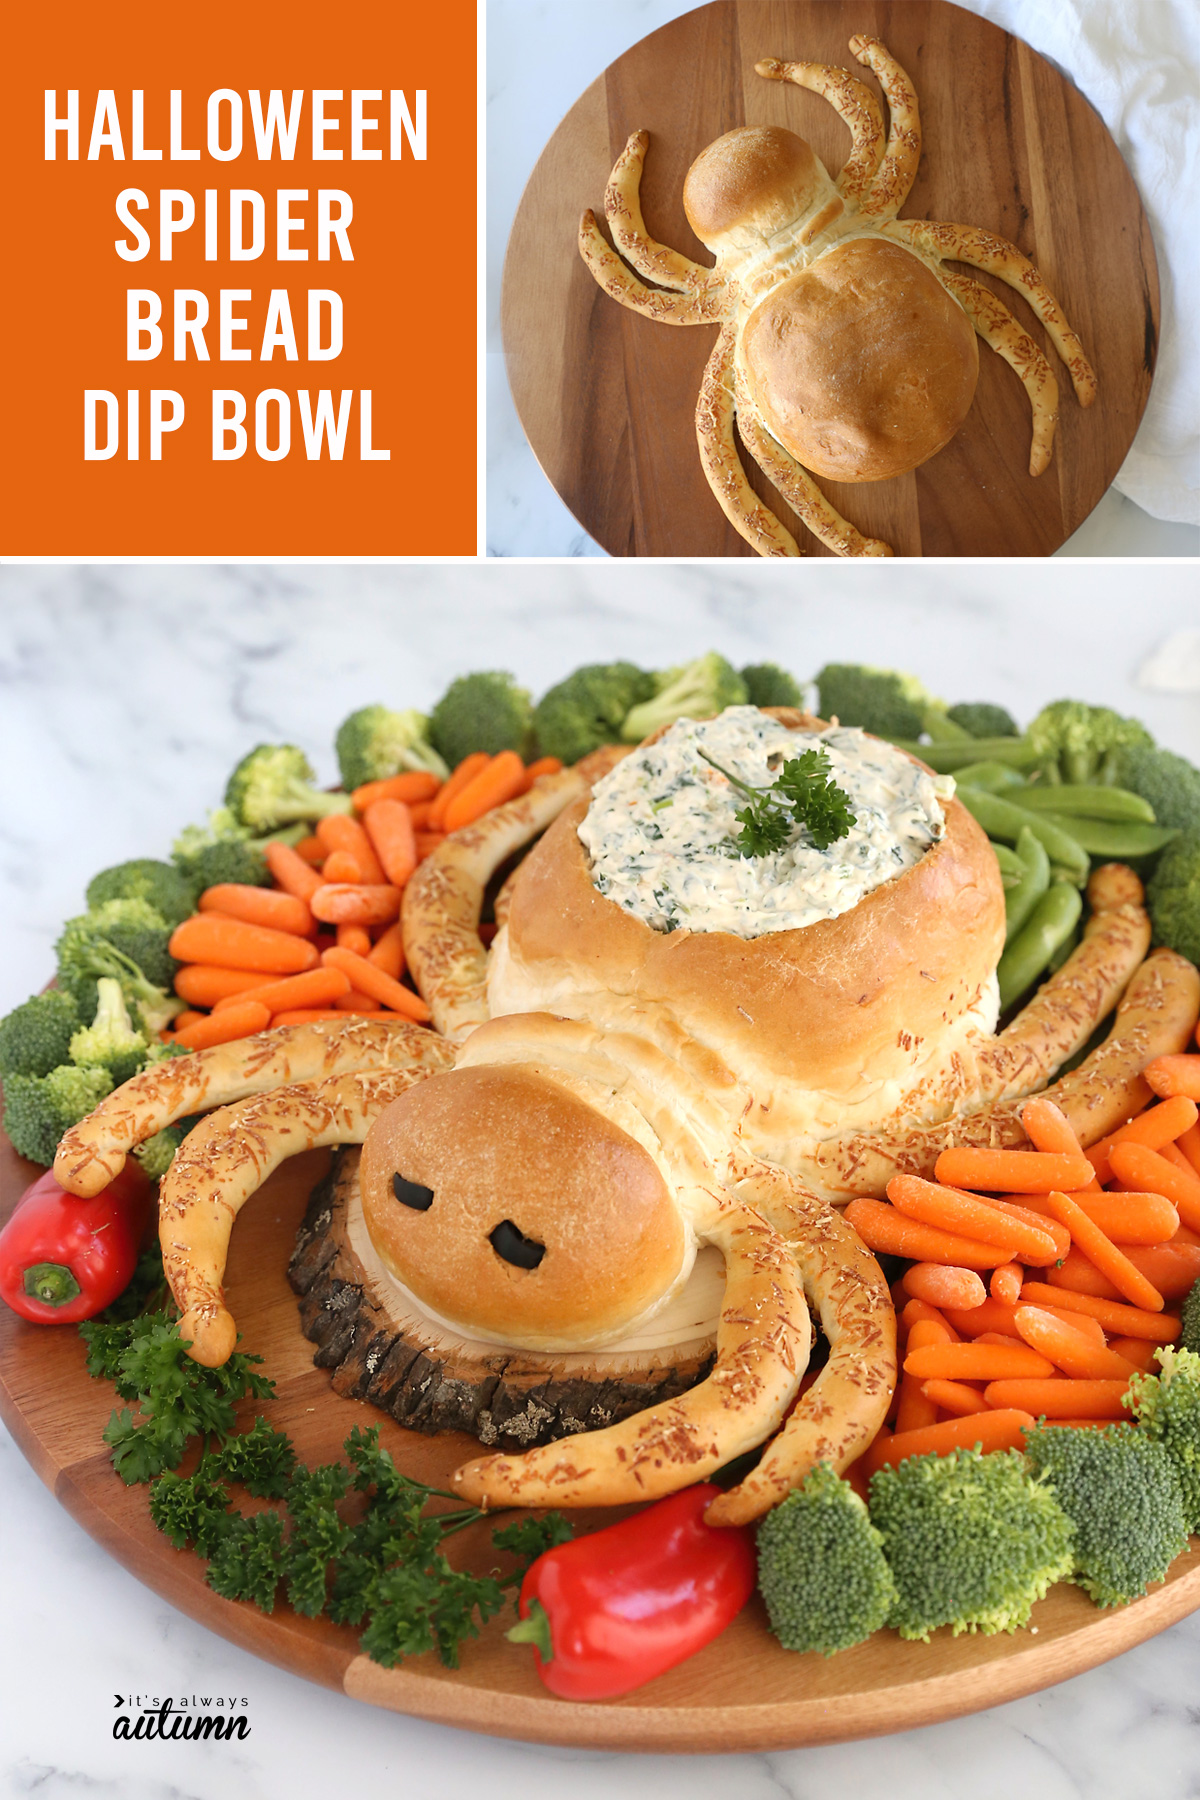 Halloween spider bread dip bowl is a your new favorite Halloween party food!